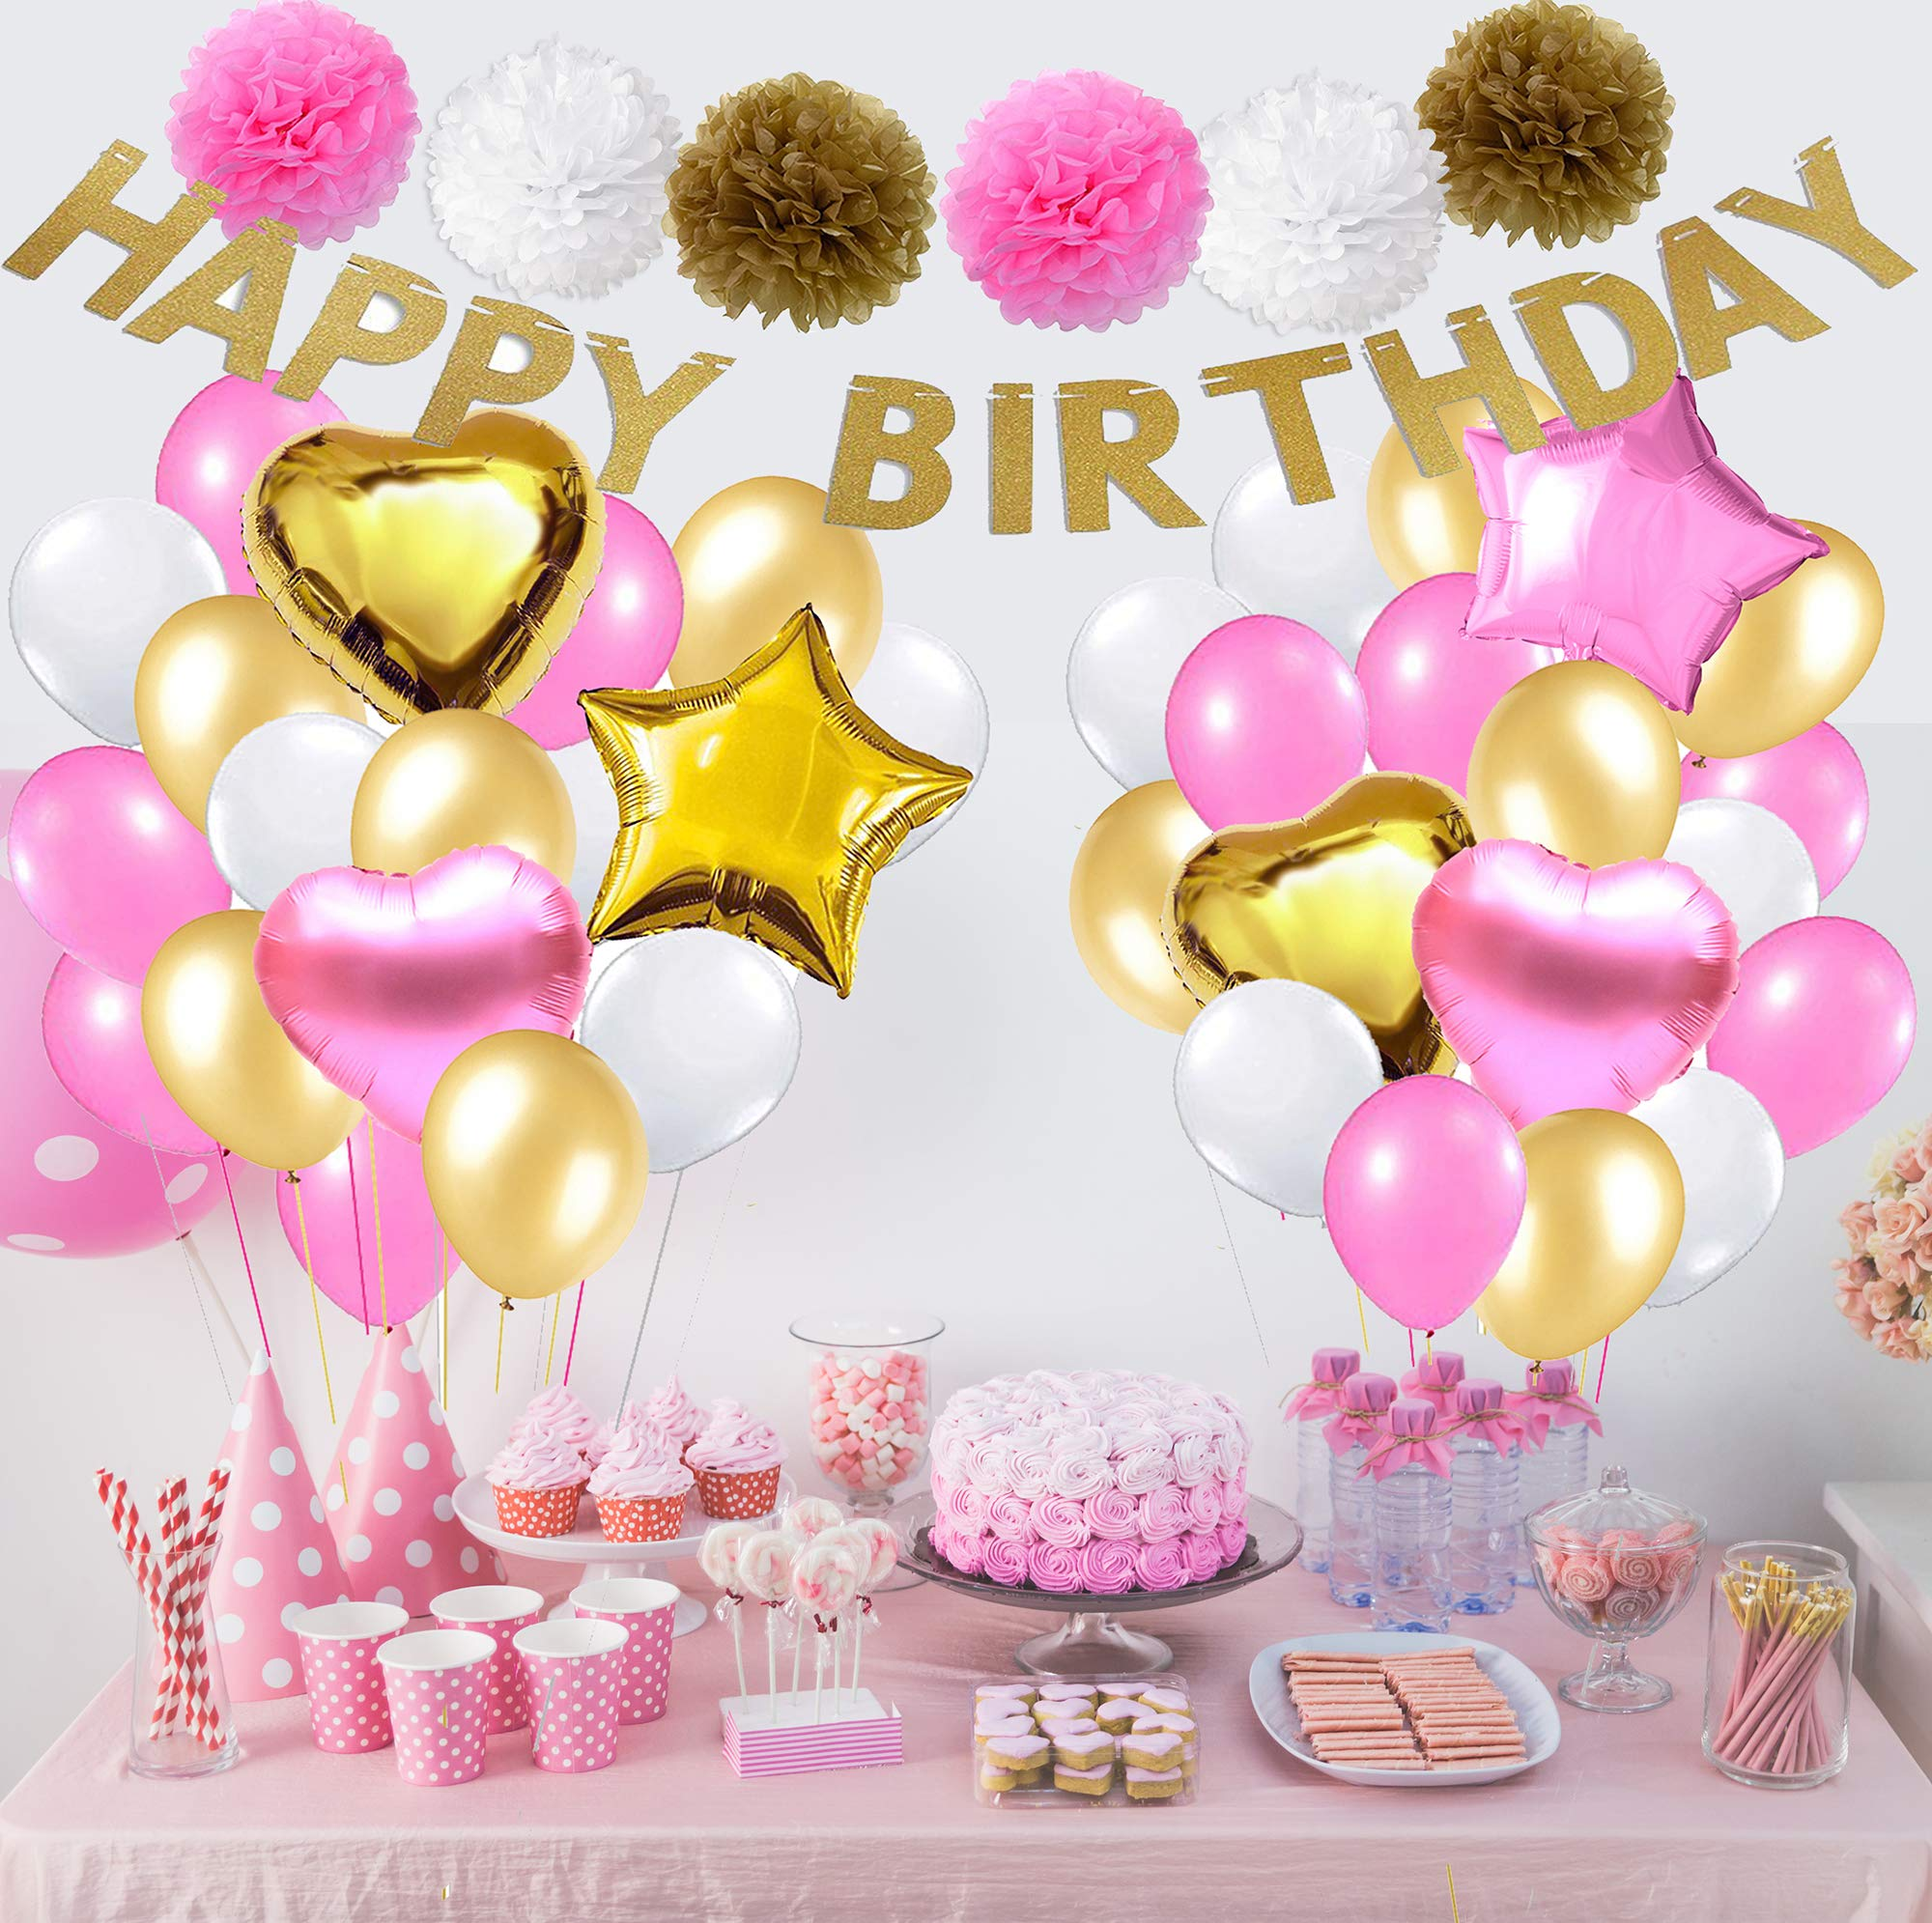 Scapa Pro Birthday Decorations for Girls Pink and Gold | 44-PC All-in-One Kit, Happy Birthday Banner; 30 Pink Gold White Balloons, 6 Foil Balloons, 6 Pom Poms & Unicorn Headband